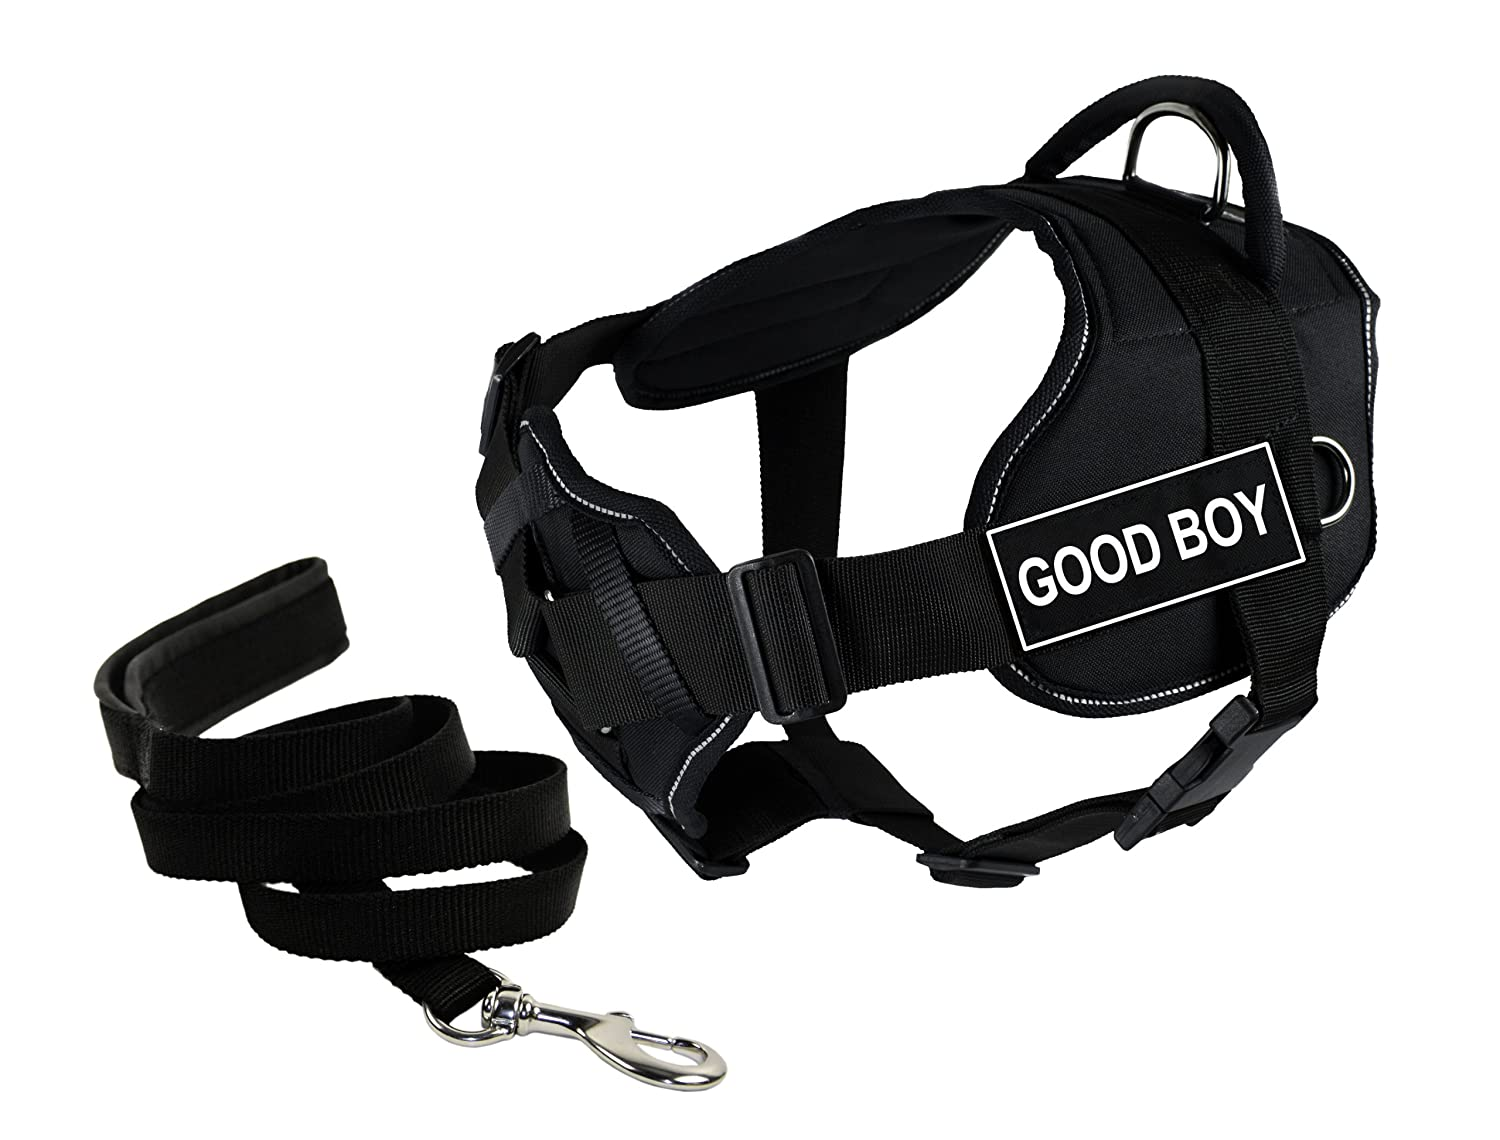 Dean & Tyler's DT Fun Chest Support GOOD BOY Harness with Reflective Trim, Medium, and 6 ft Padded Puppy Leash.